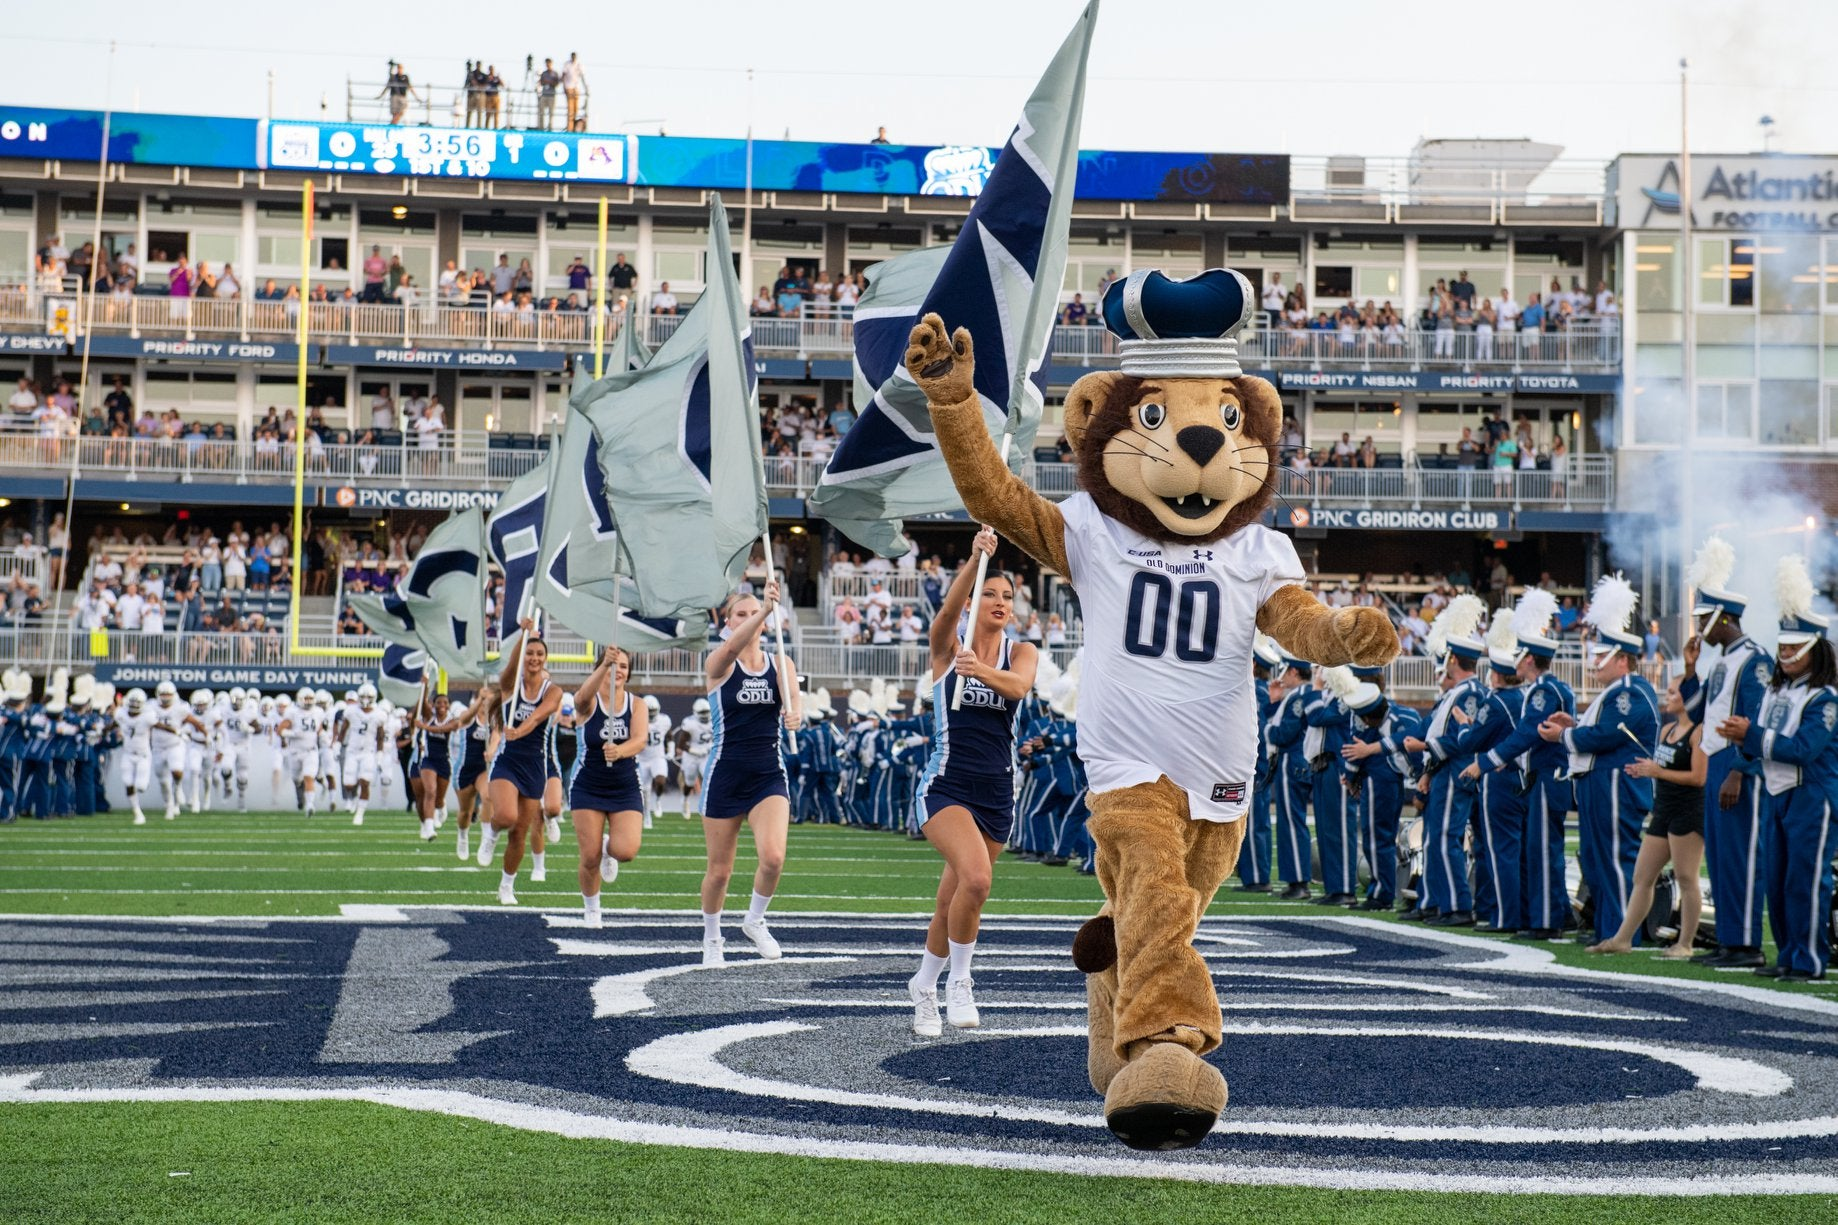 ODU Football vs. UAB